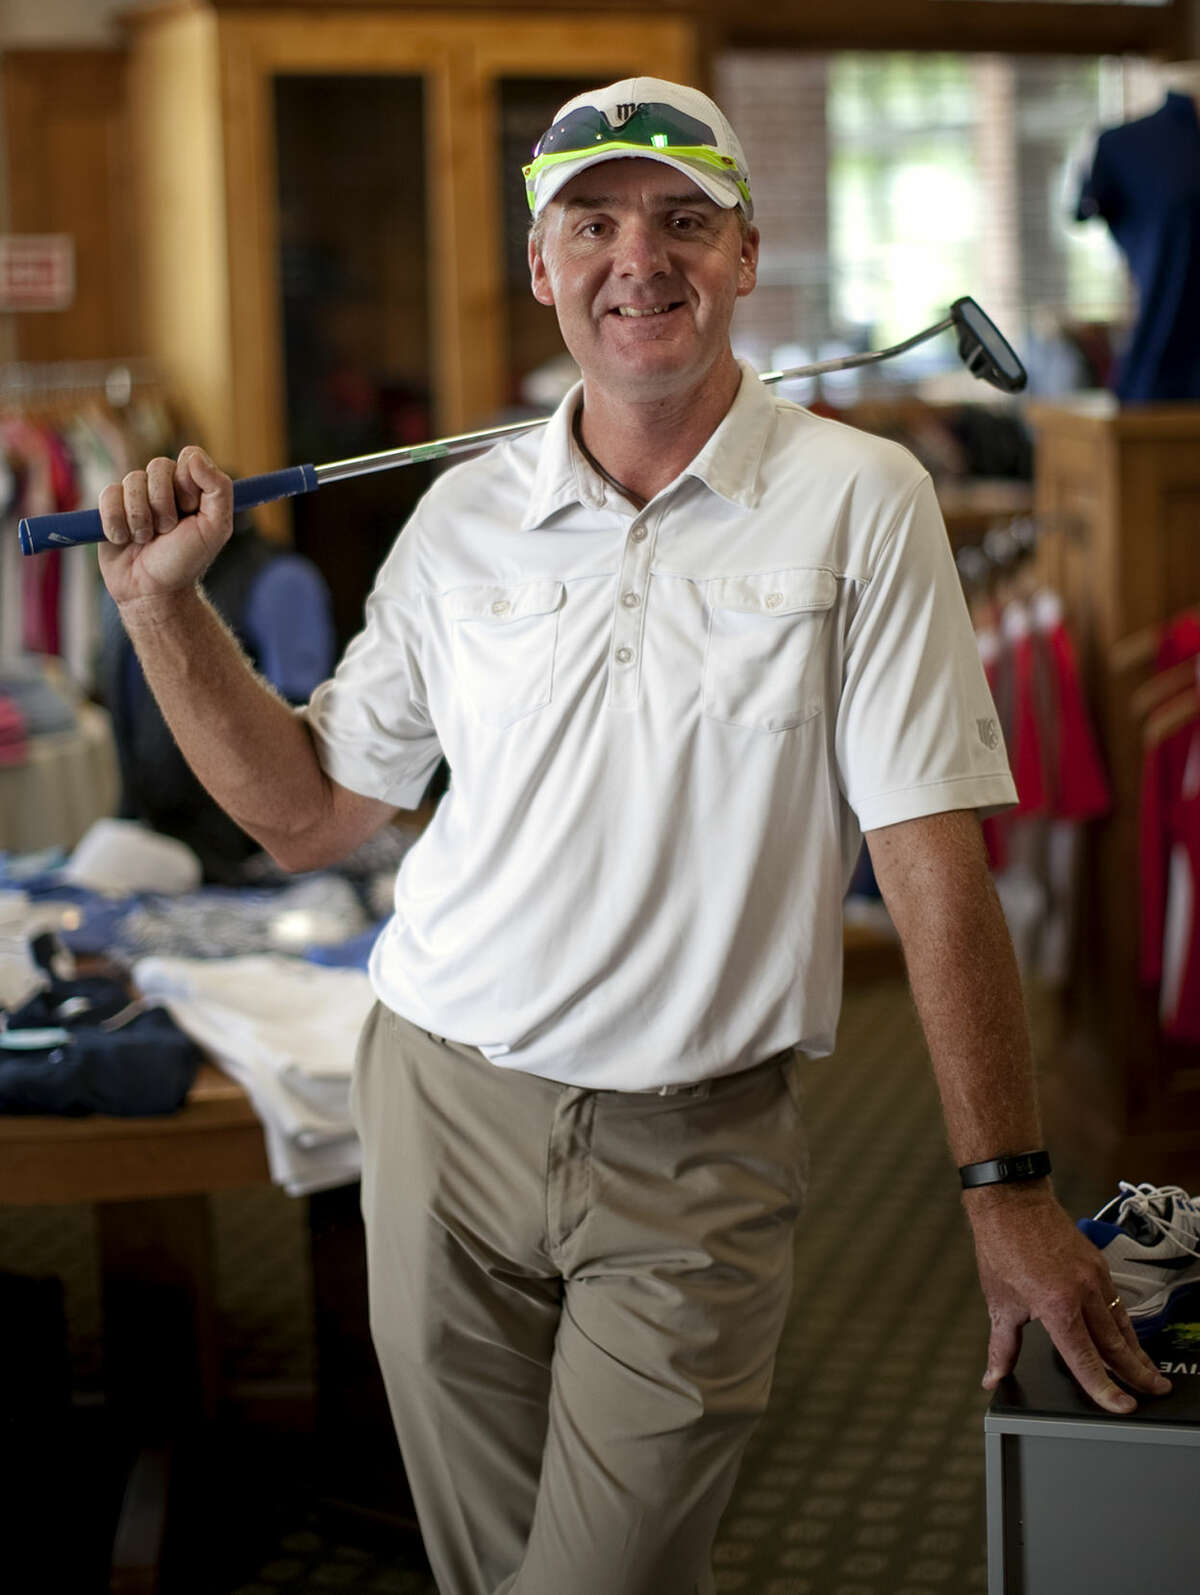 Steven Young, assistant pro at Midland Country Club, in portrait Thursday, July 30, 2015 at the pro shop. James Durbin/Reporter-Telegram